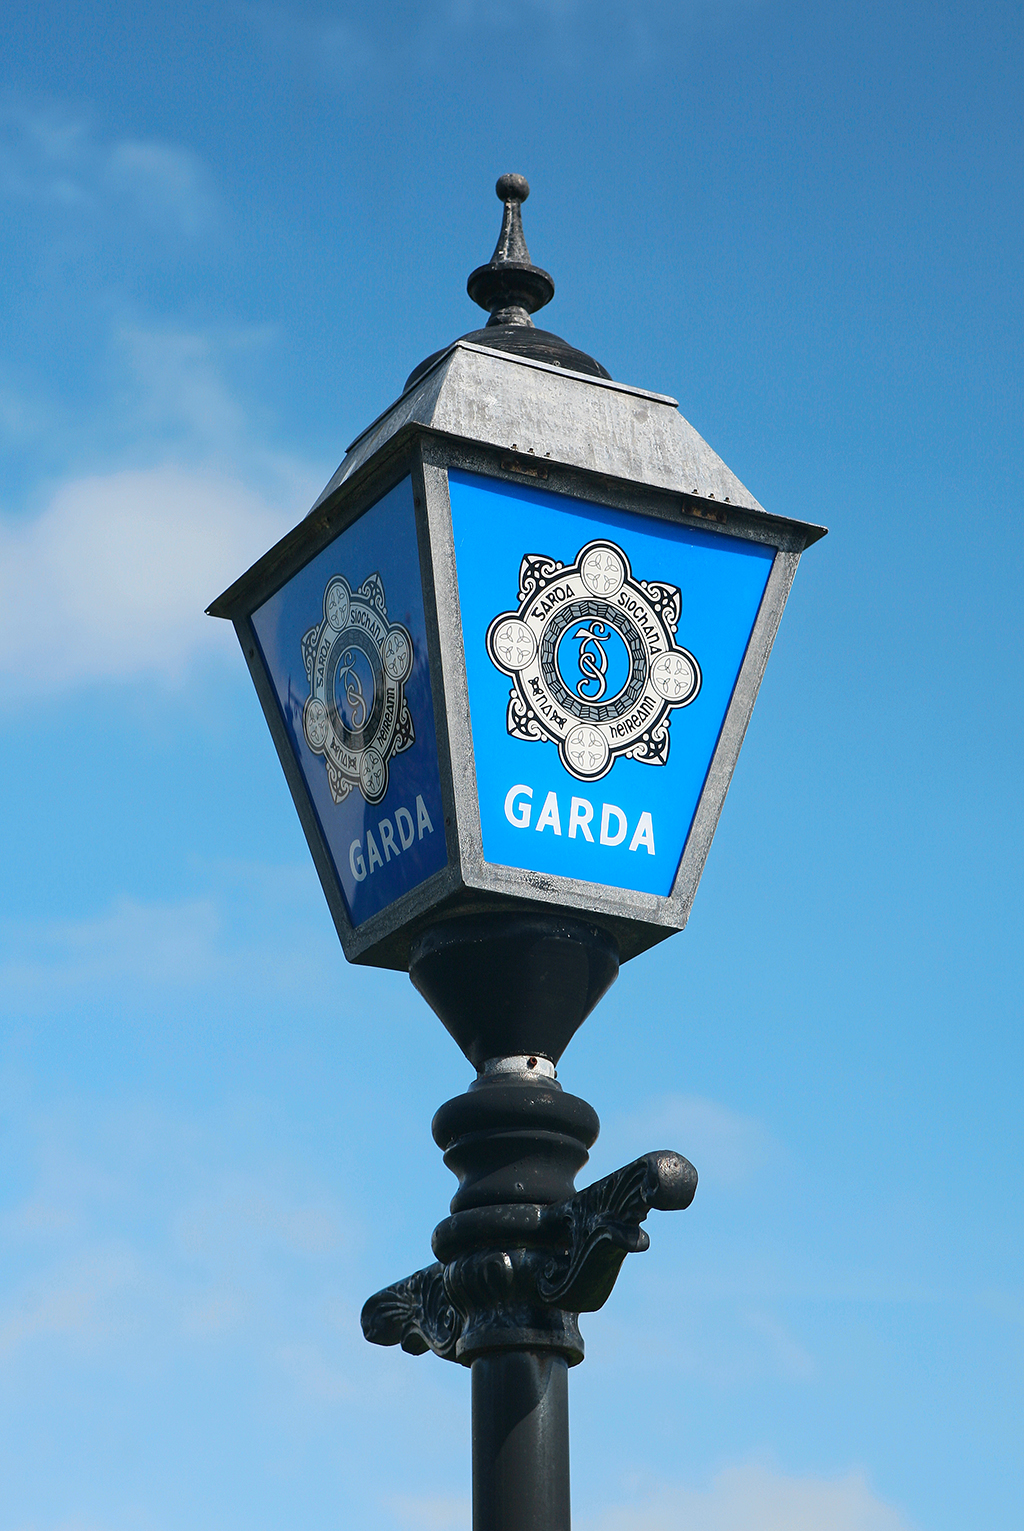 call for rush garda station to be adequately resourced 0721000000